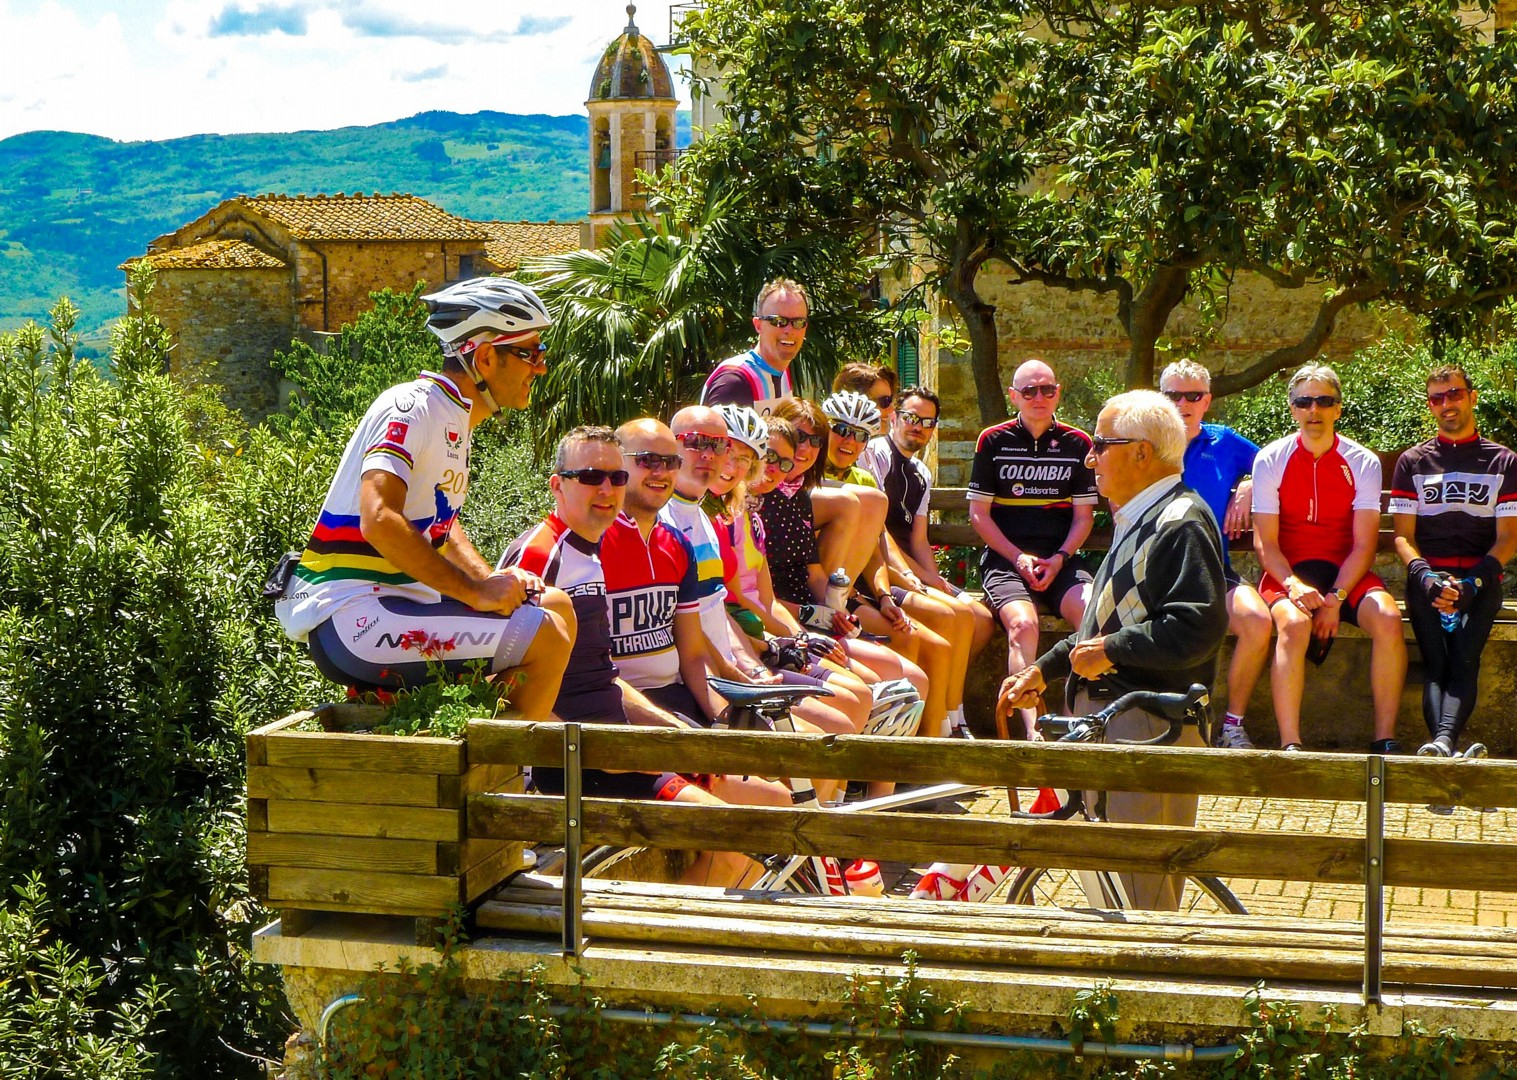 79.jpg - Italy - Tuscany - Giro della Toscana - Guided Road Cycling Holiday - Road Cycling